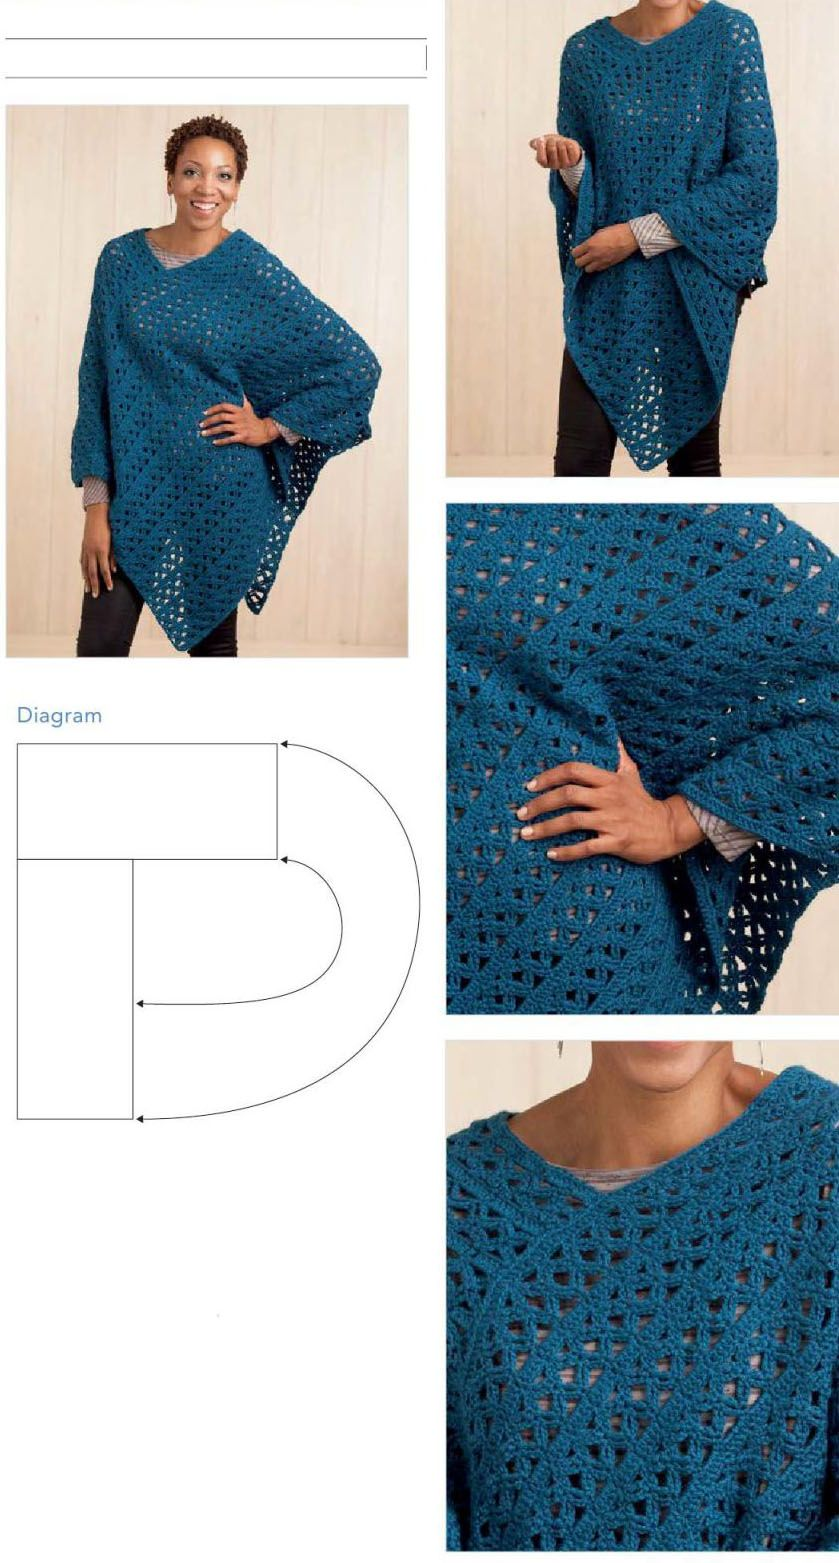 Diagram | Crochet | Pinterest